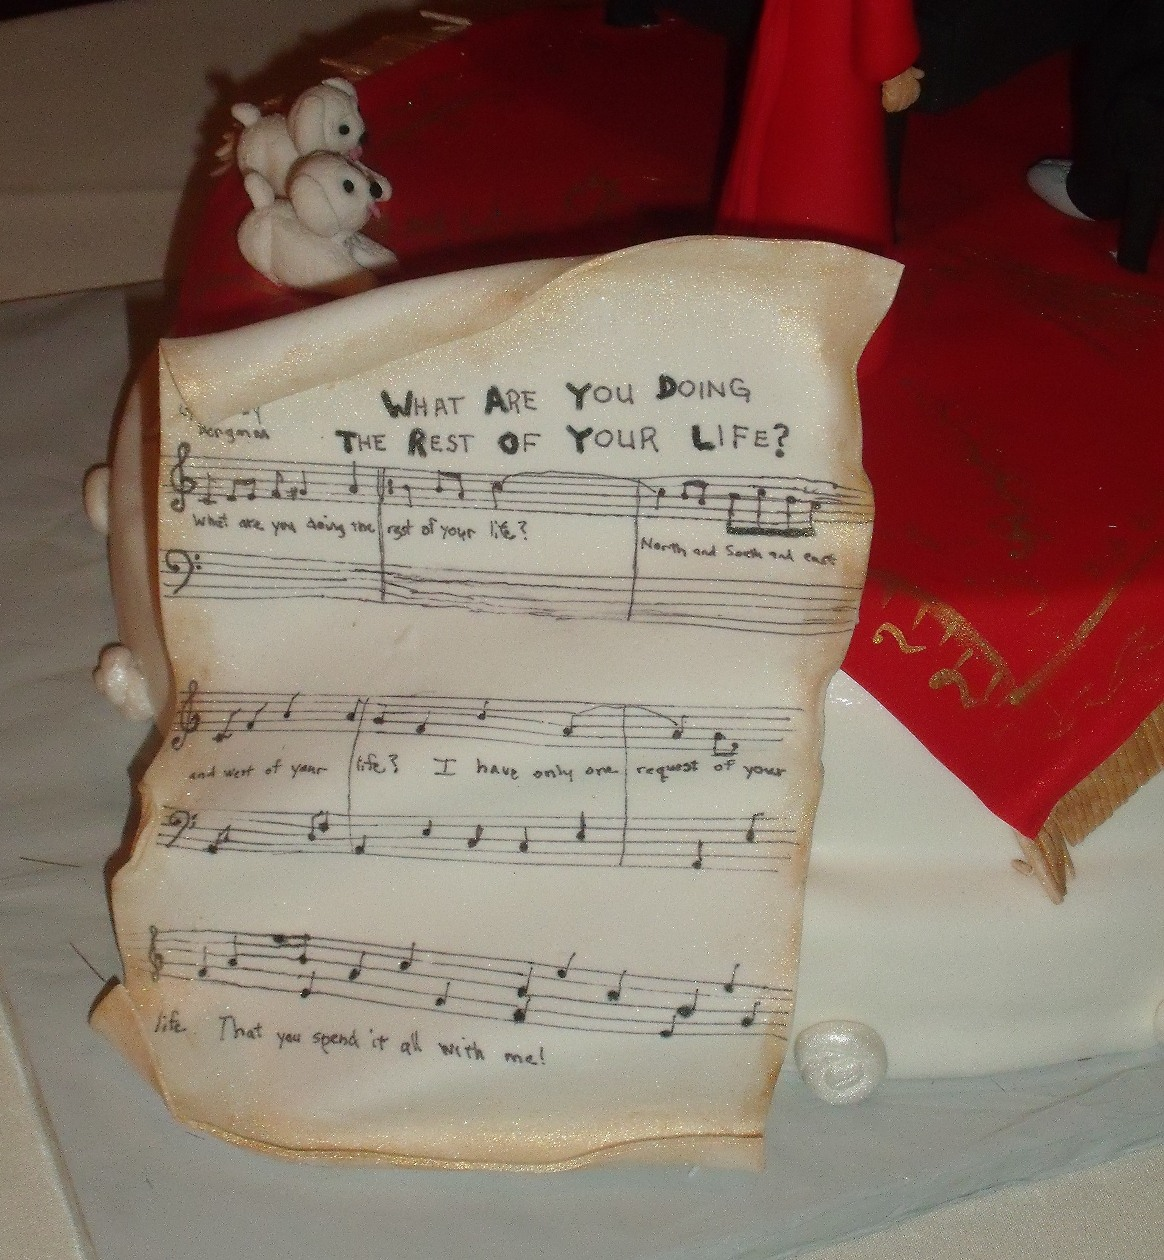 50th Anniversary Cupcake Decorations 50th Anniversary Cake With Musical Couple With All Edible